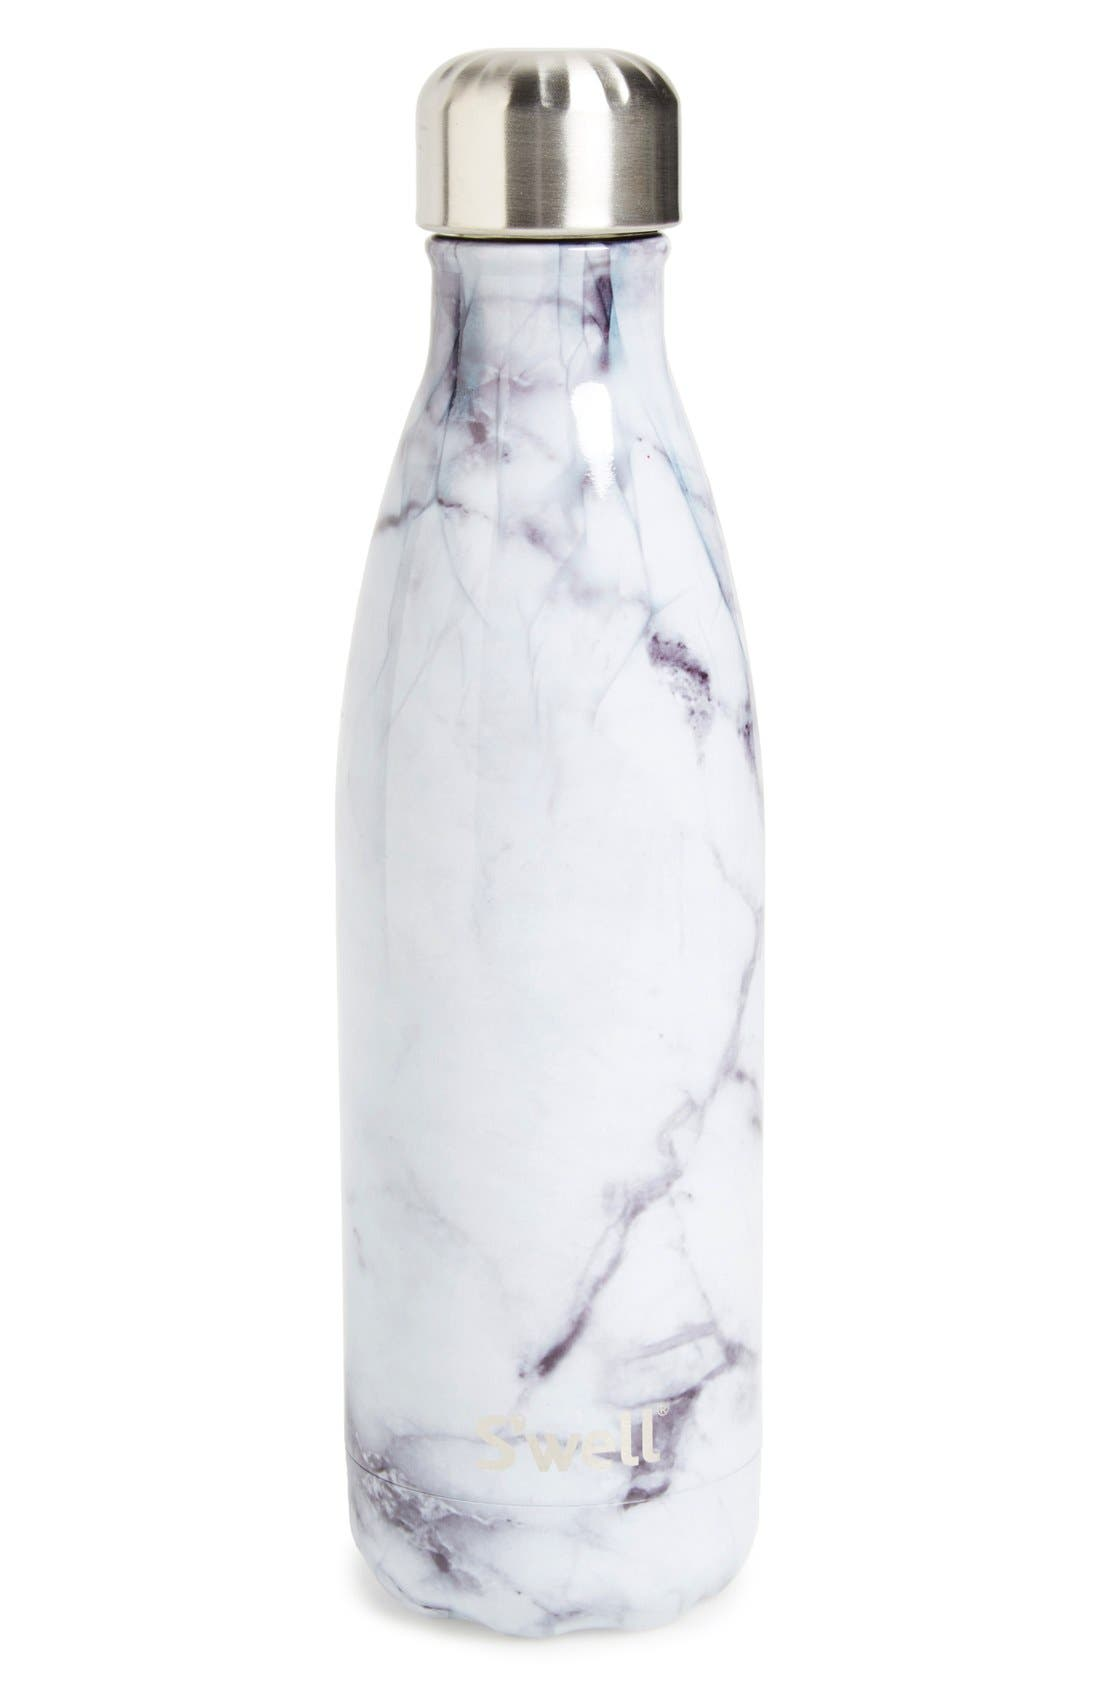 S'WELL 'White Marble' Insulated Stainless Steel Water Bottle, Main, color, 100